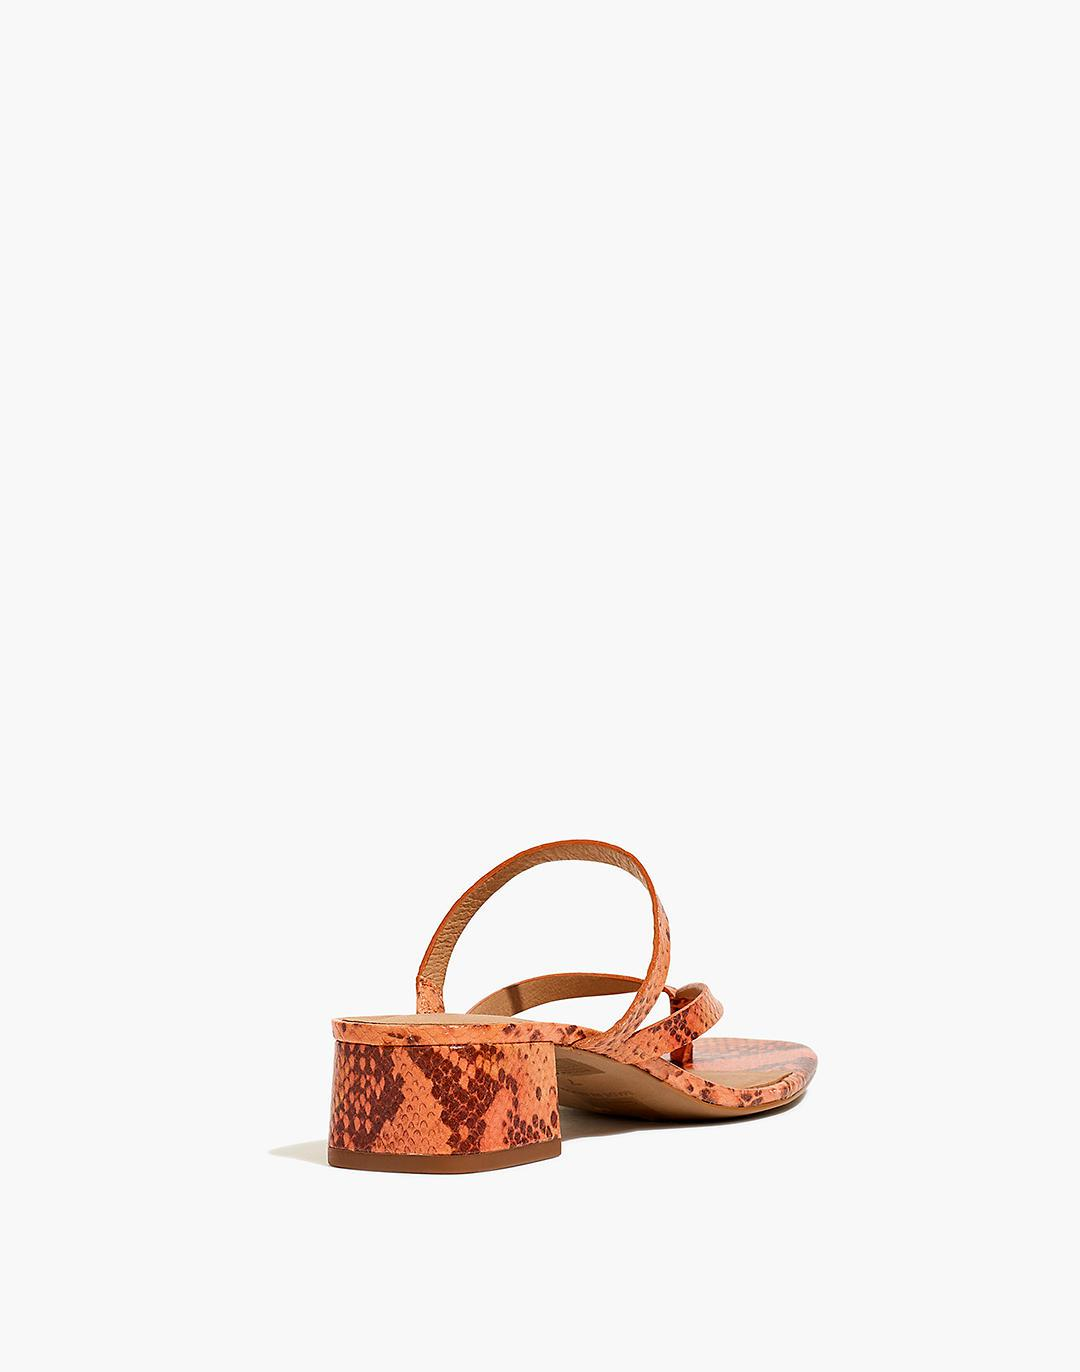 The Amber Sandal in Snake Embossed Leather 2